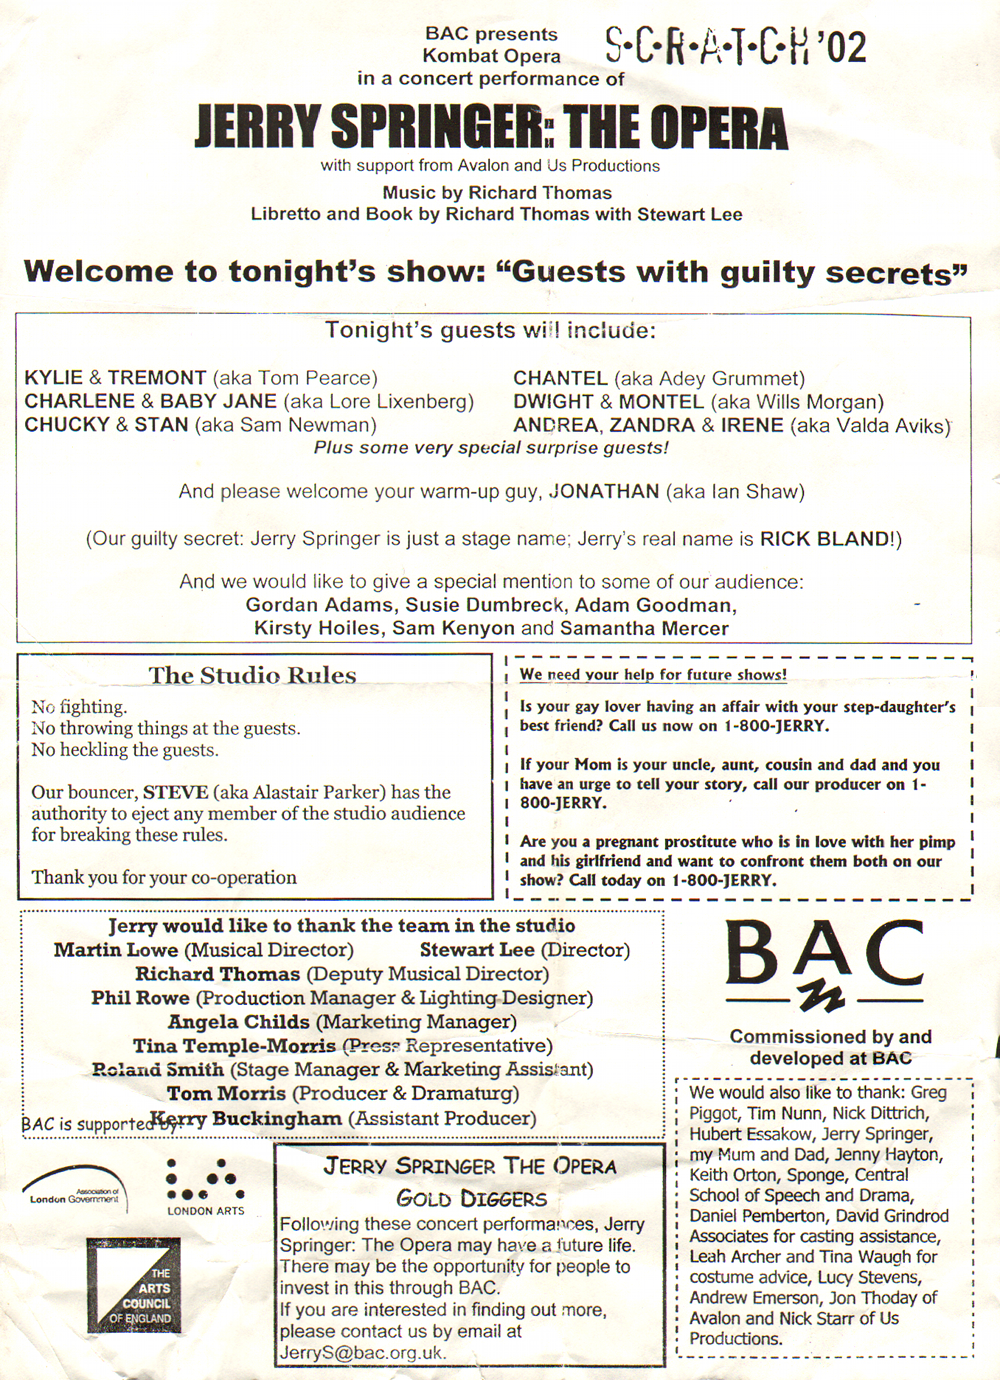 Jerry Springer: The Opera leaflet